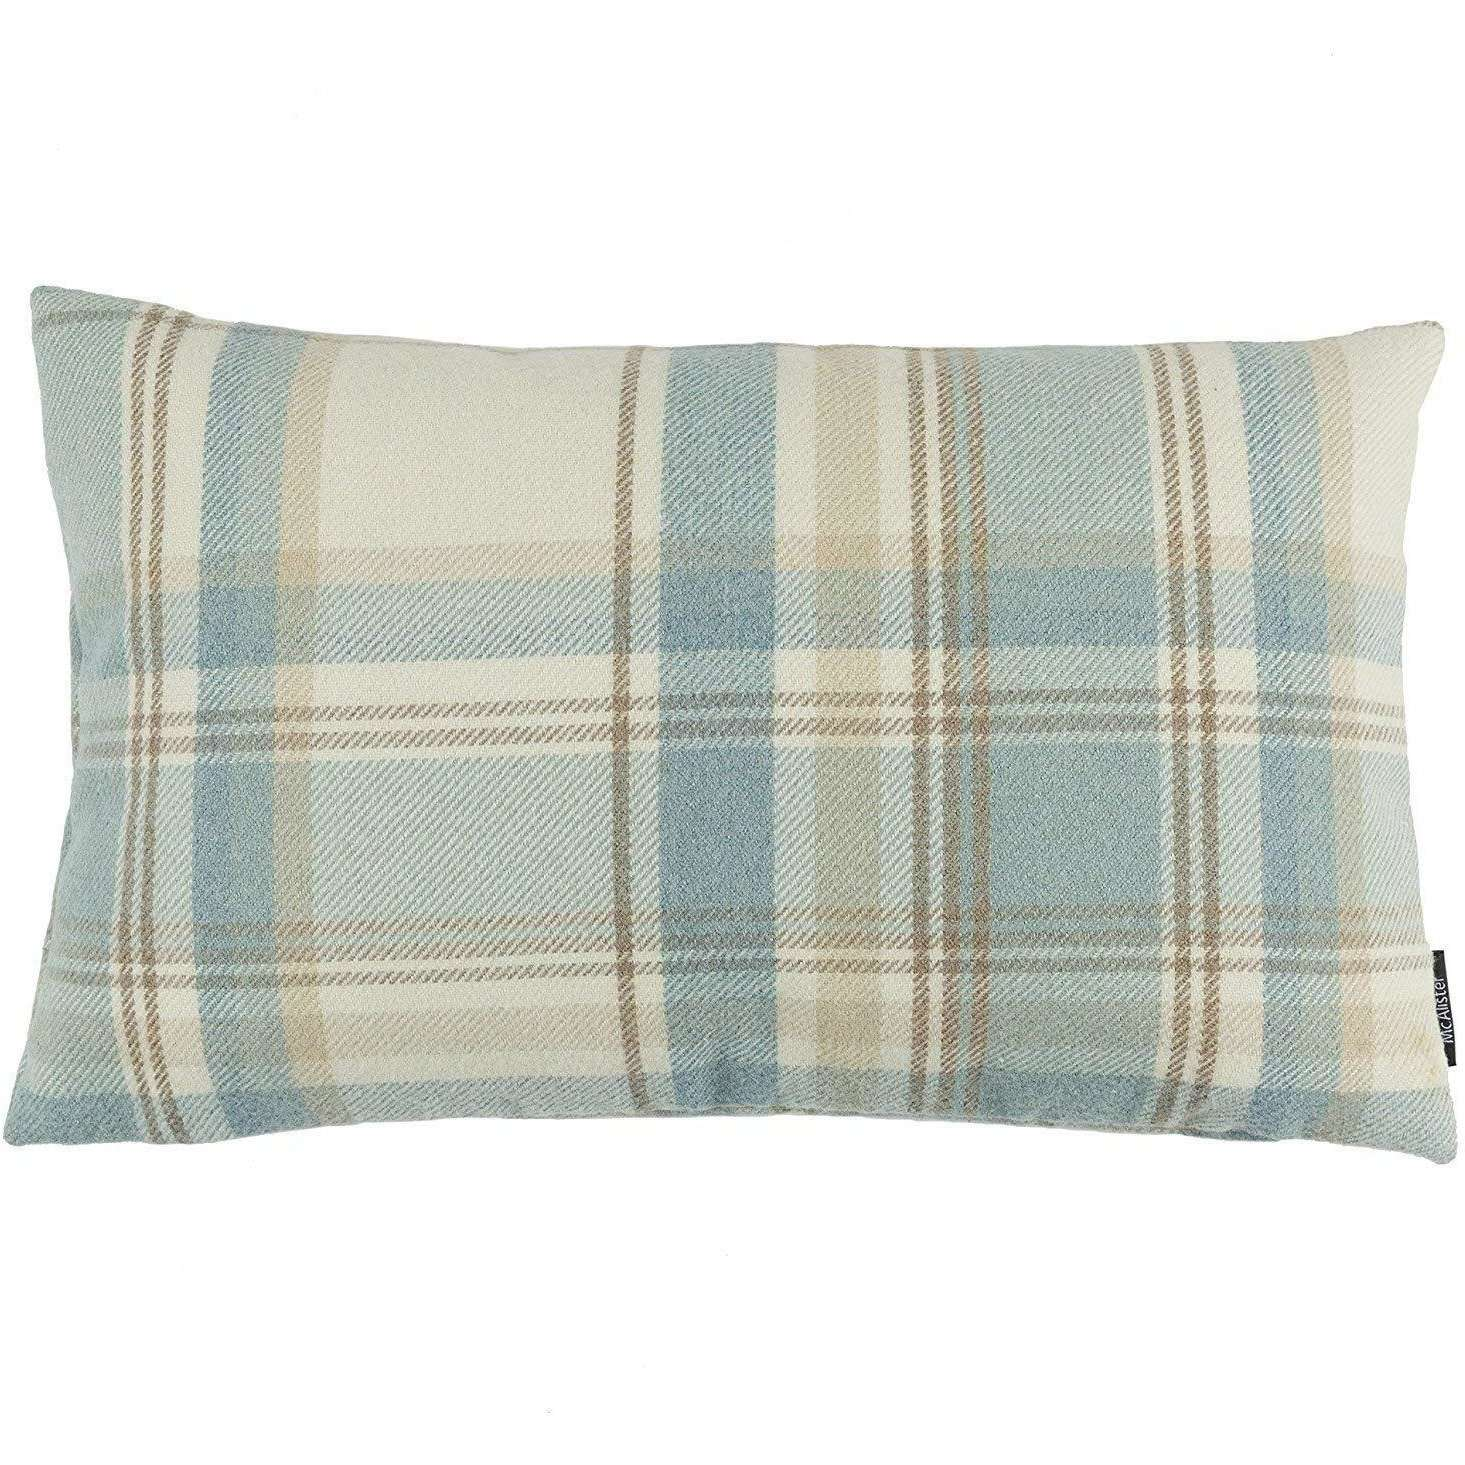 McAlister Textiles Heritage Duck Egg Blue Tartan Cushion Cushions and Covers Cover Only 50cm x 30cm